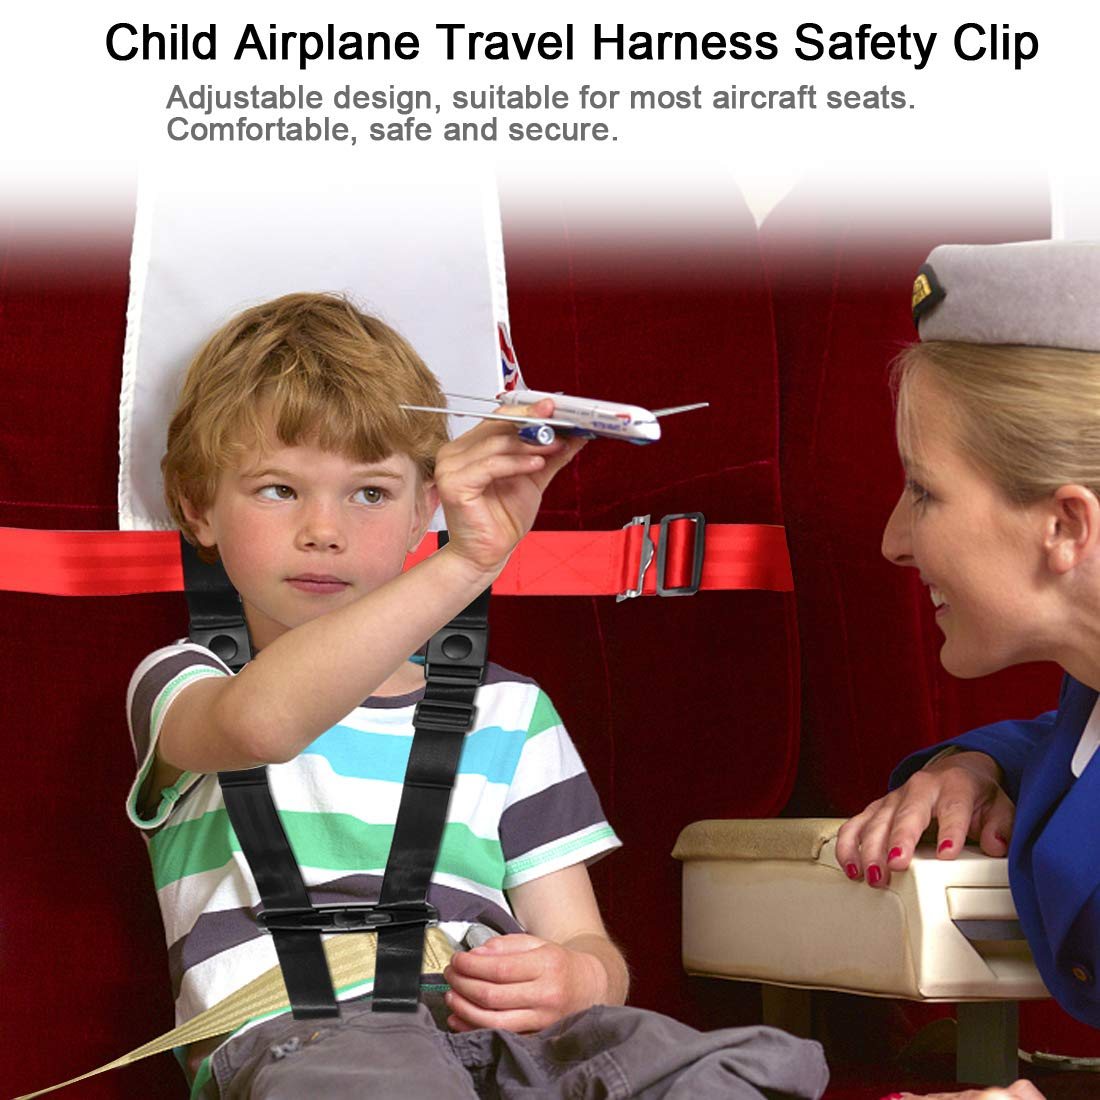 Child Airplane Travel Harness Safety Clip Strap Restraint System for Baby, Toddlers & Kids- for Airplane Travel Use Only by Together-life (Image #4)